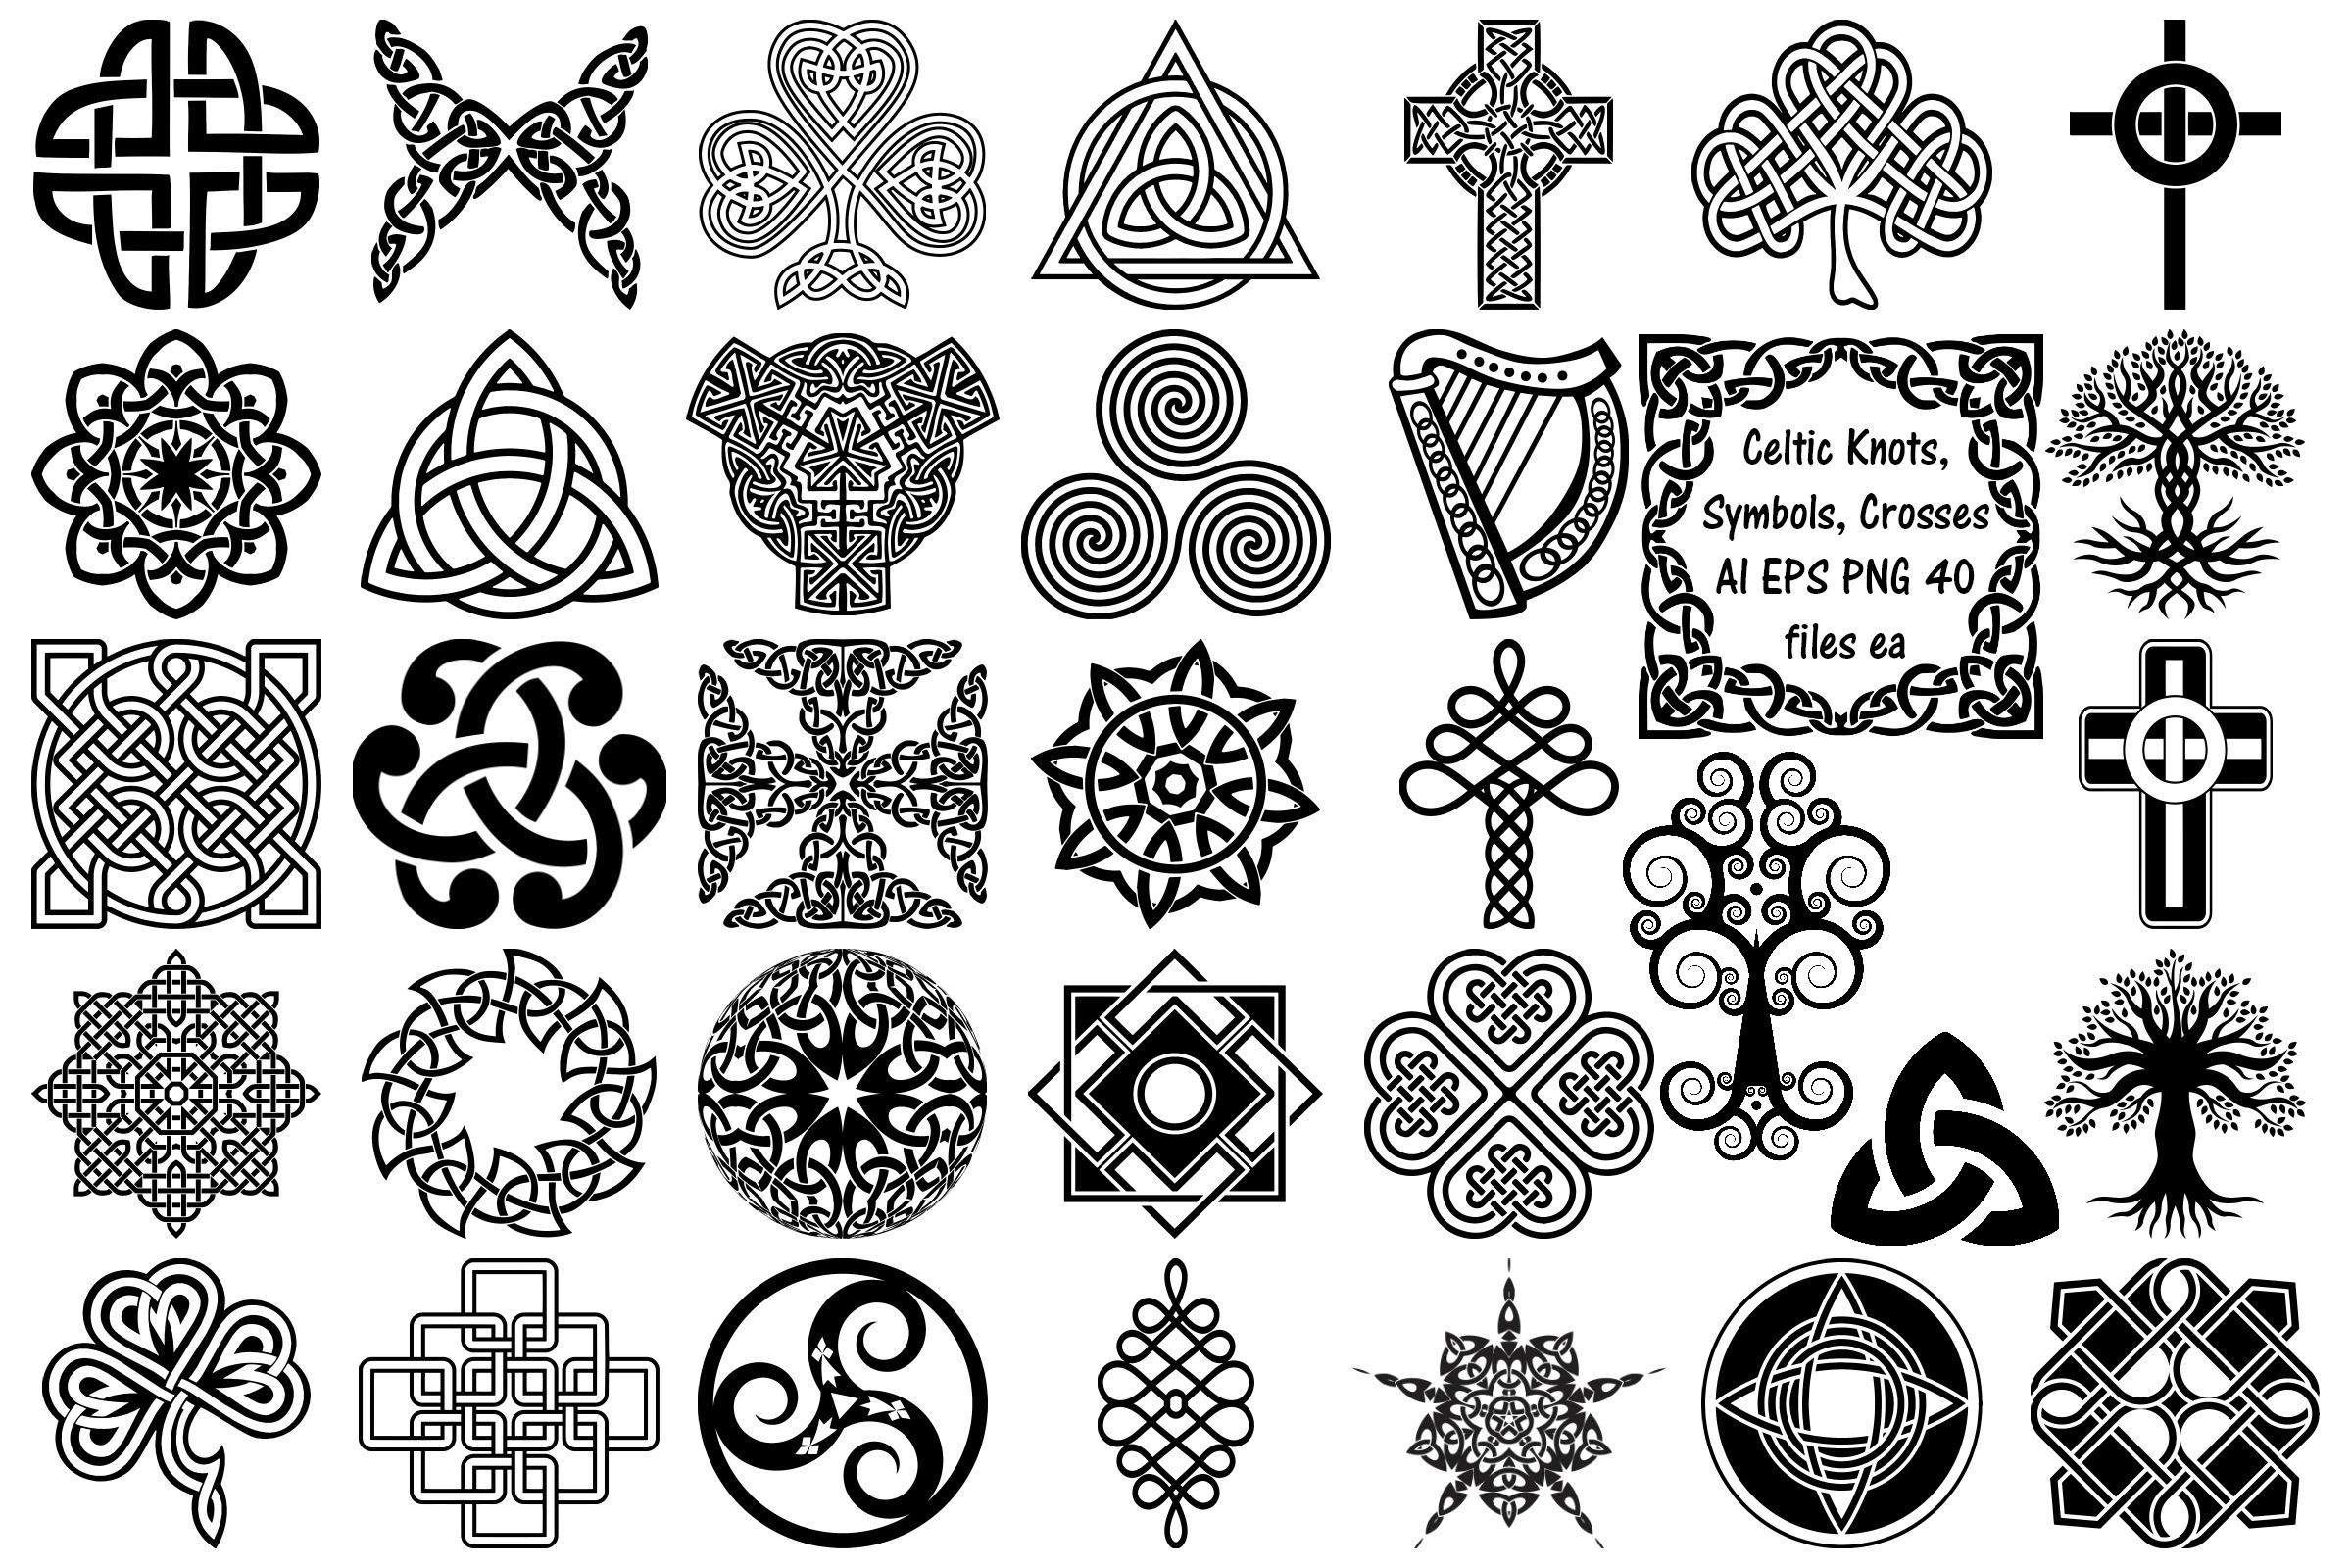 Celtic Symbols, Knots & Crosses AI EPS PNG, Irish Clip Art example image 1